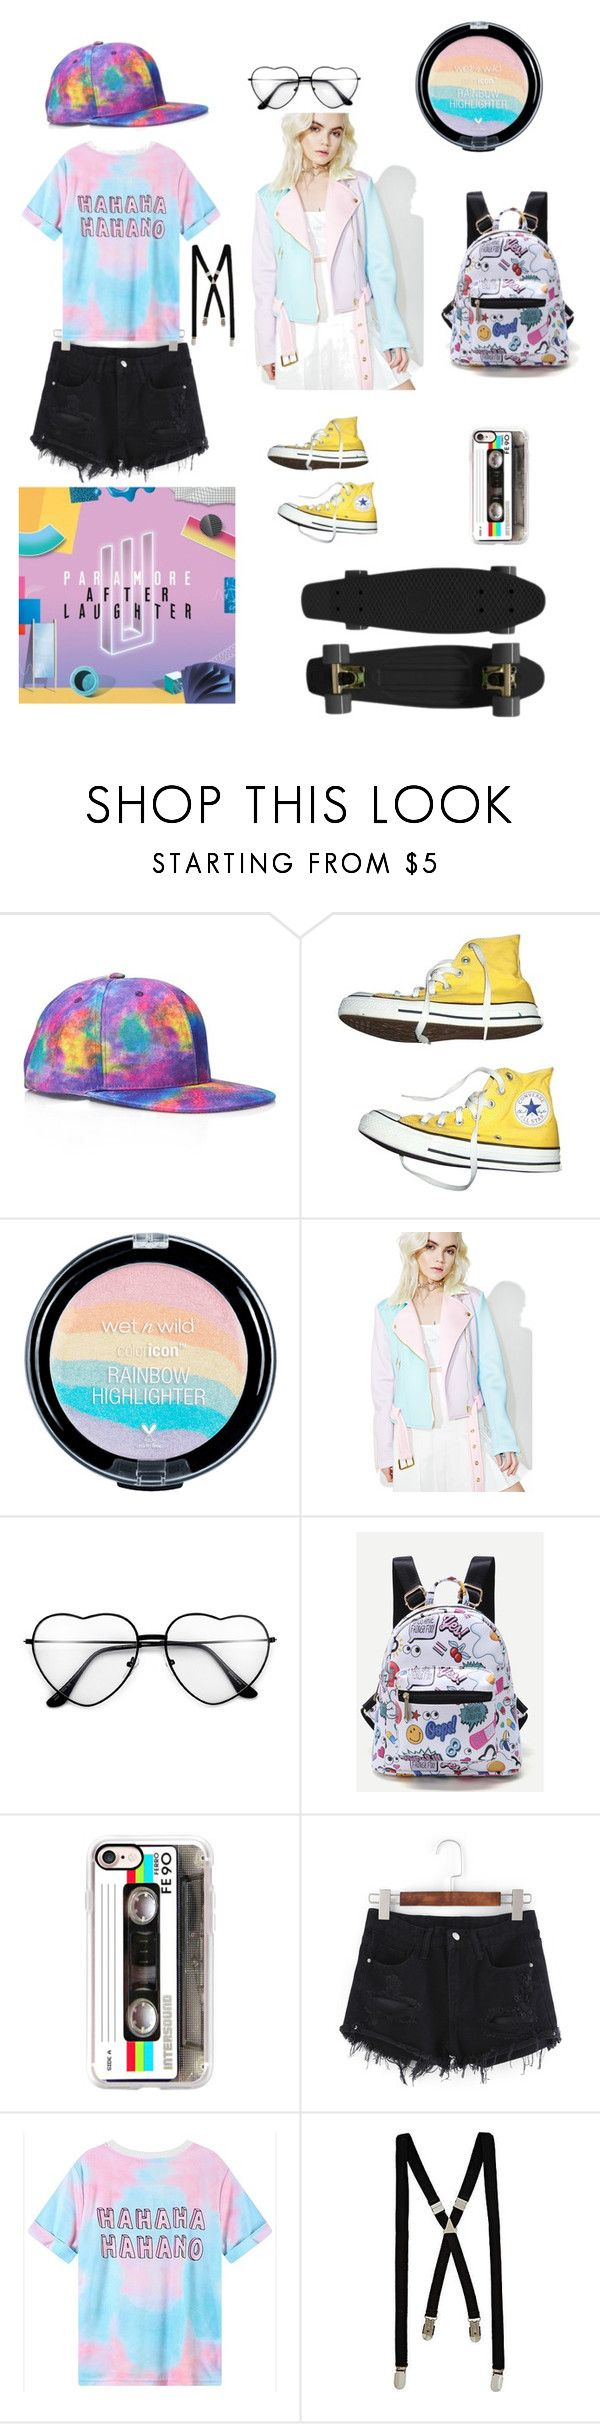 """After Laughter - Paramore"" by mylifeinsilentwonderland ❤ liked on Polyvore featuring 21 Men, Converse, Sugarpills, Casetify, River Island and Retrò"